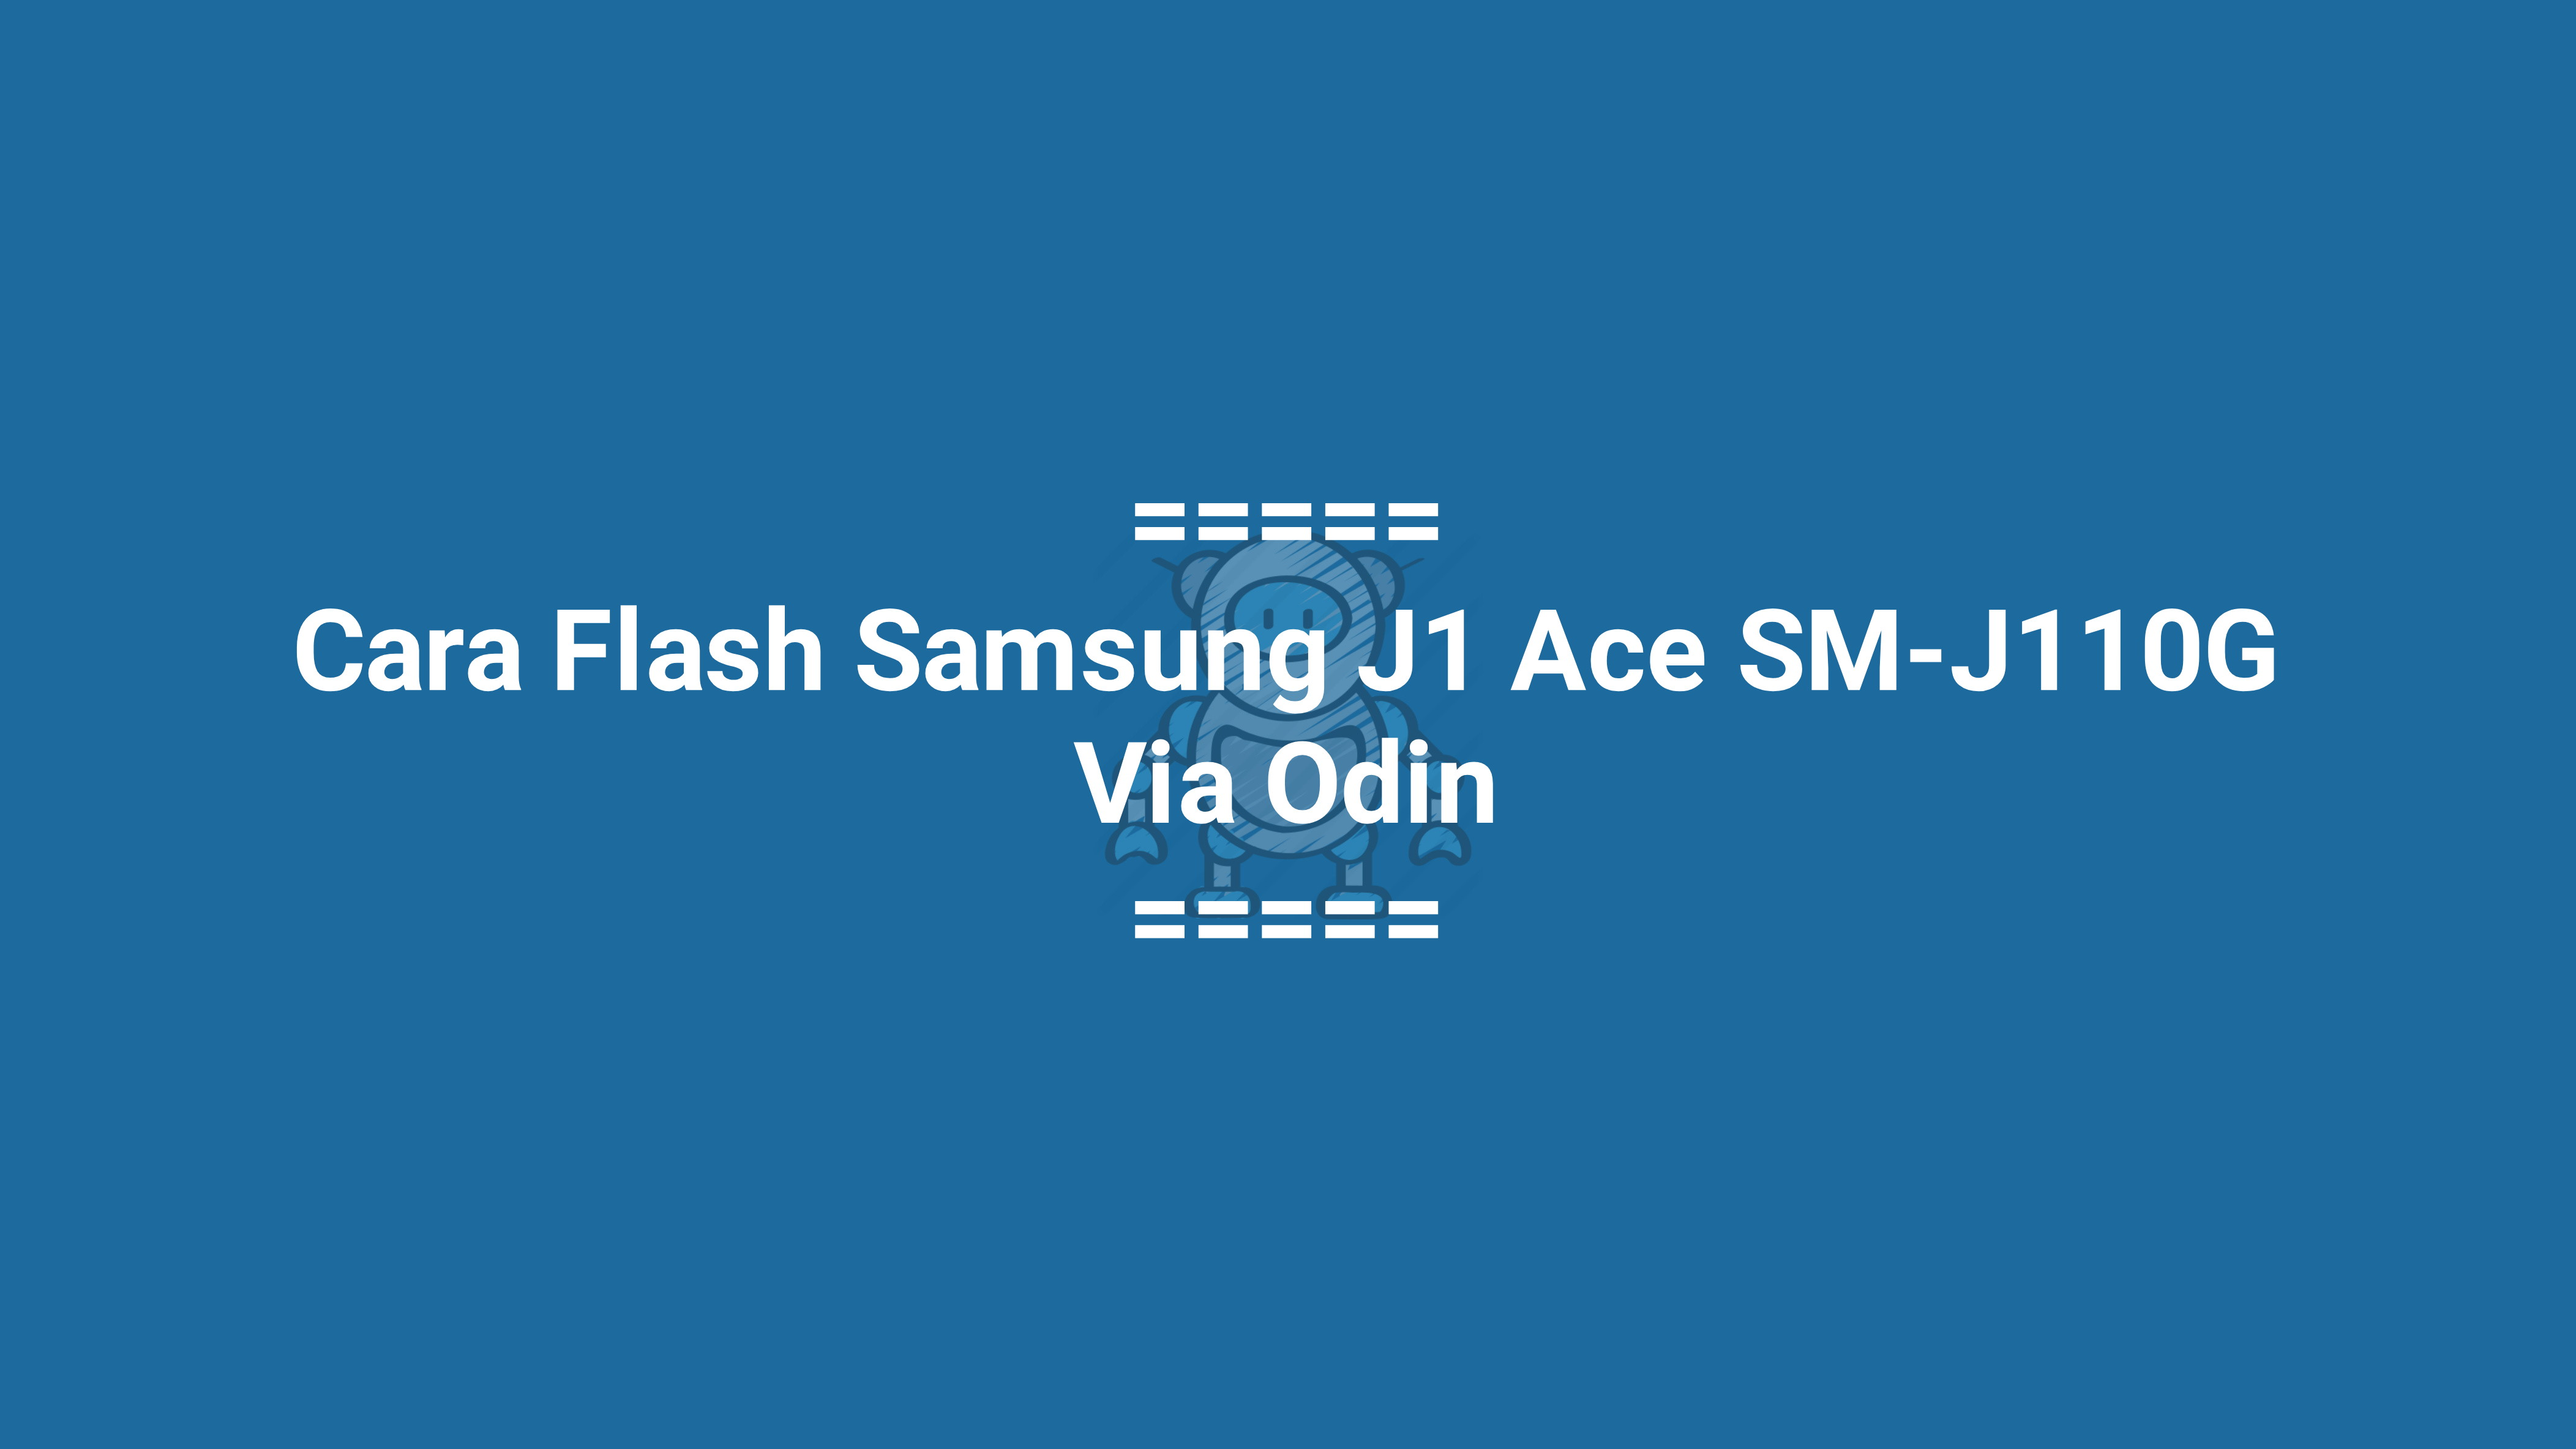 Cara Flash Samsung J1 Ace SM-J110G